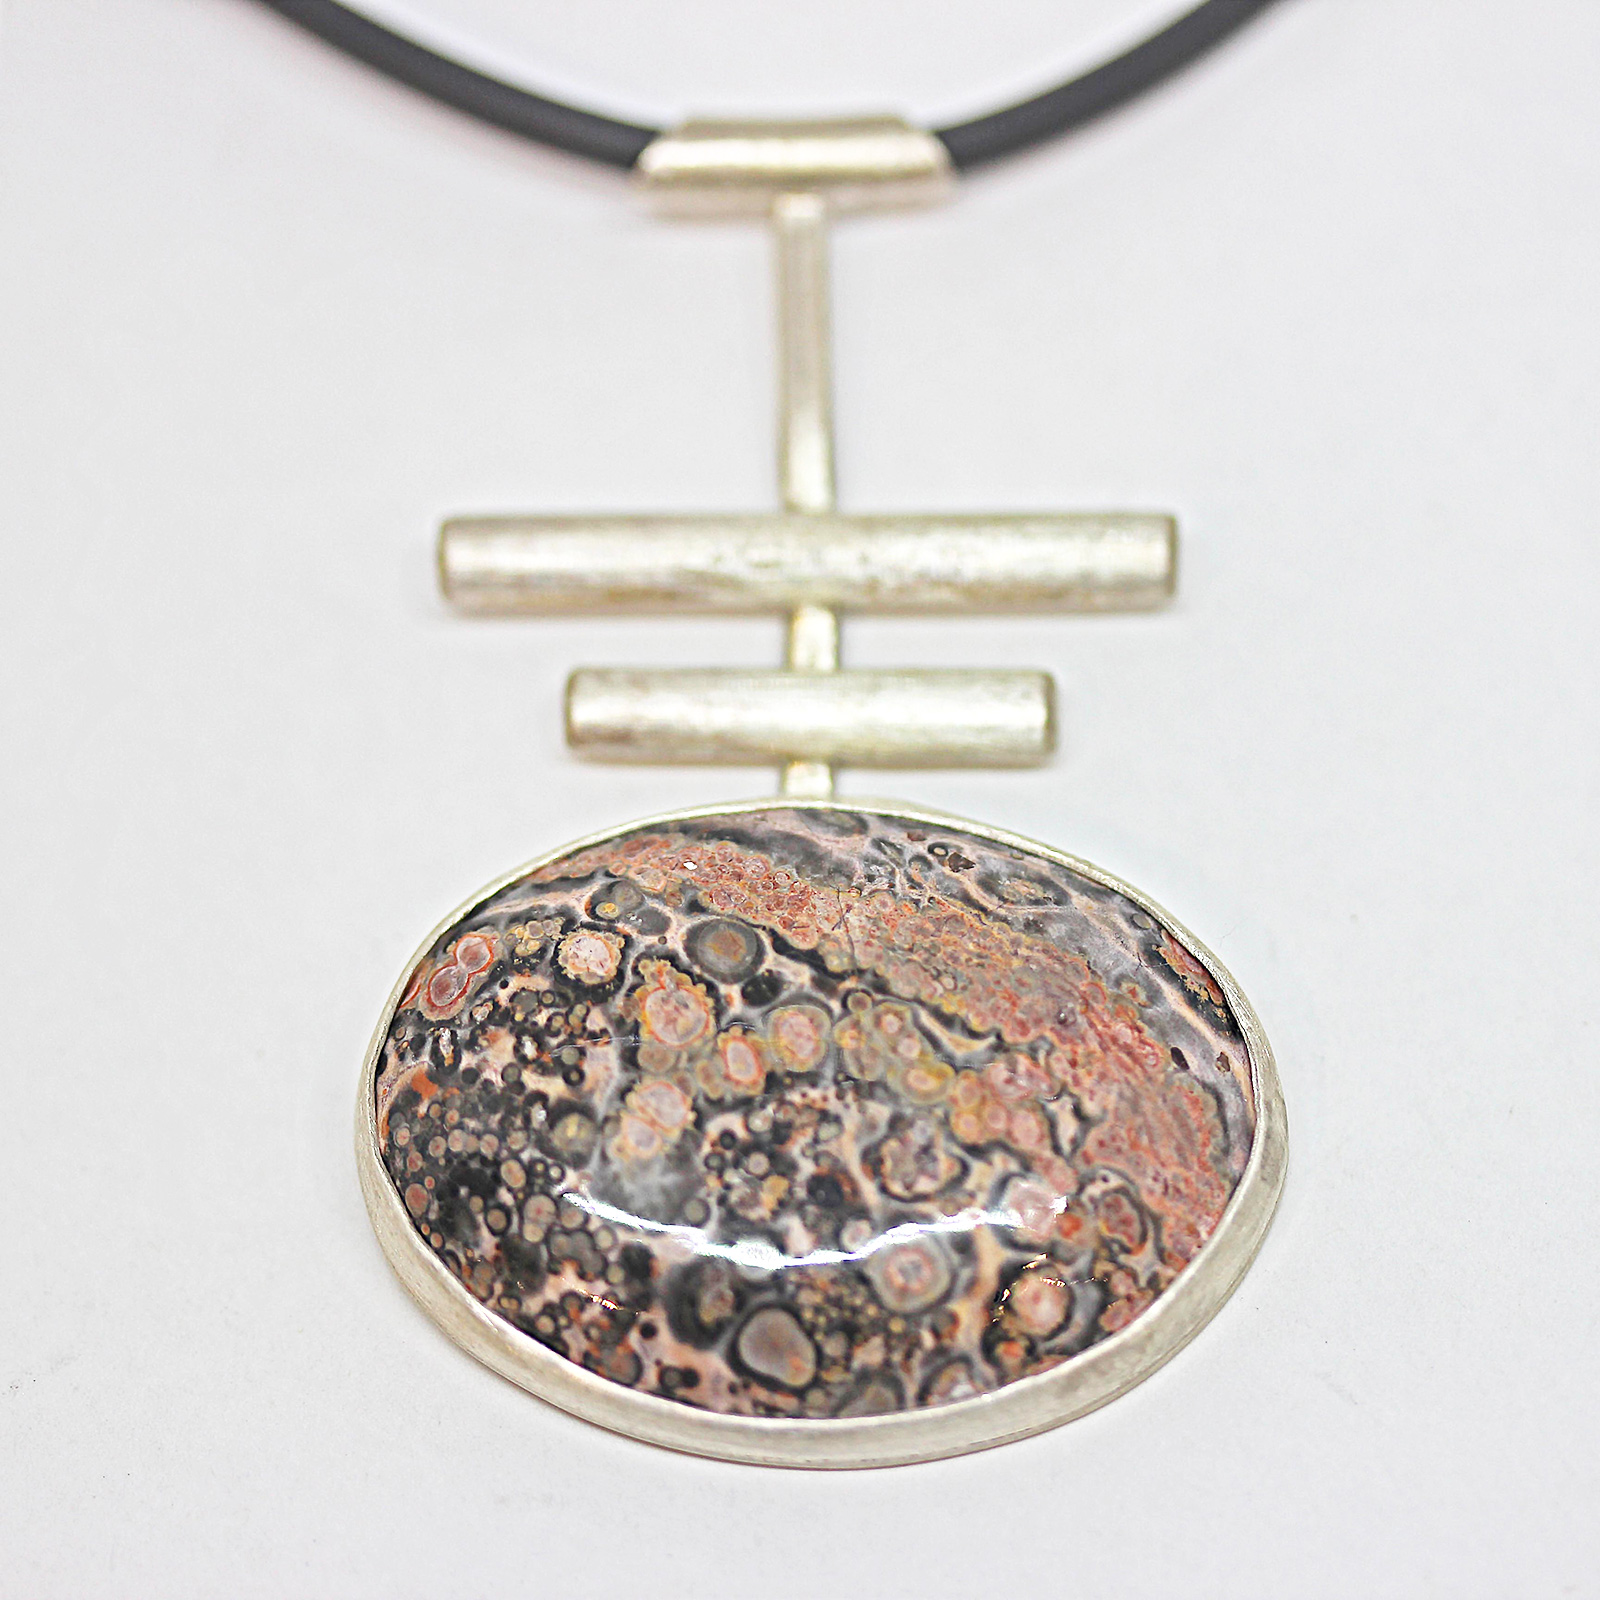 Leopardskin jasper zen necklace on pvc